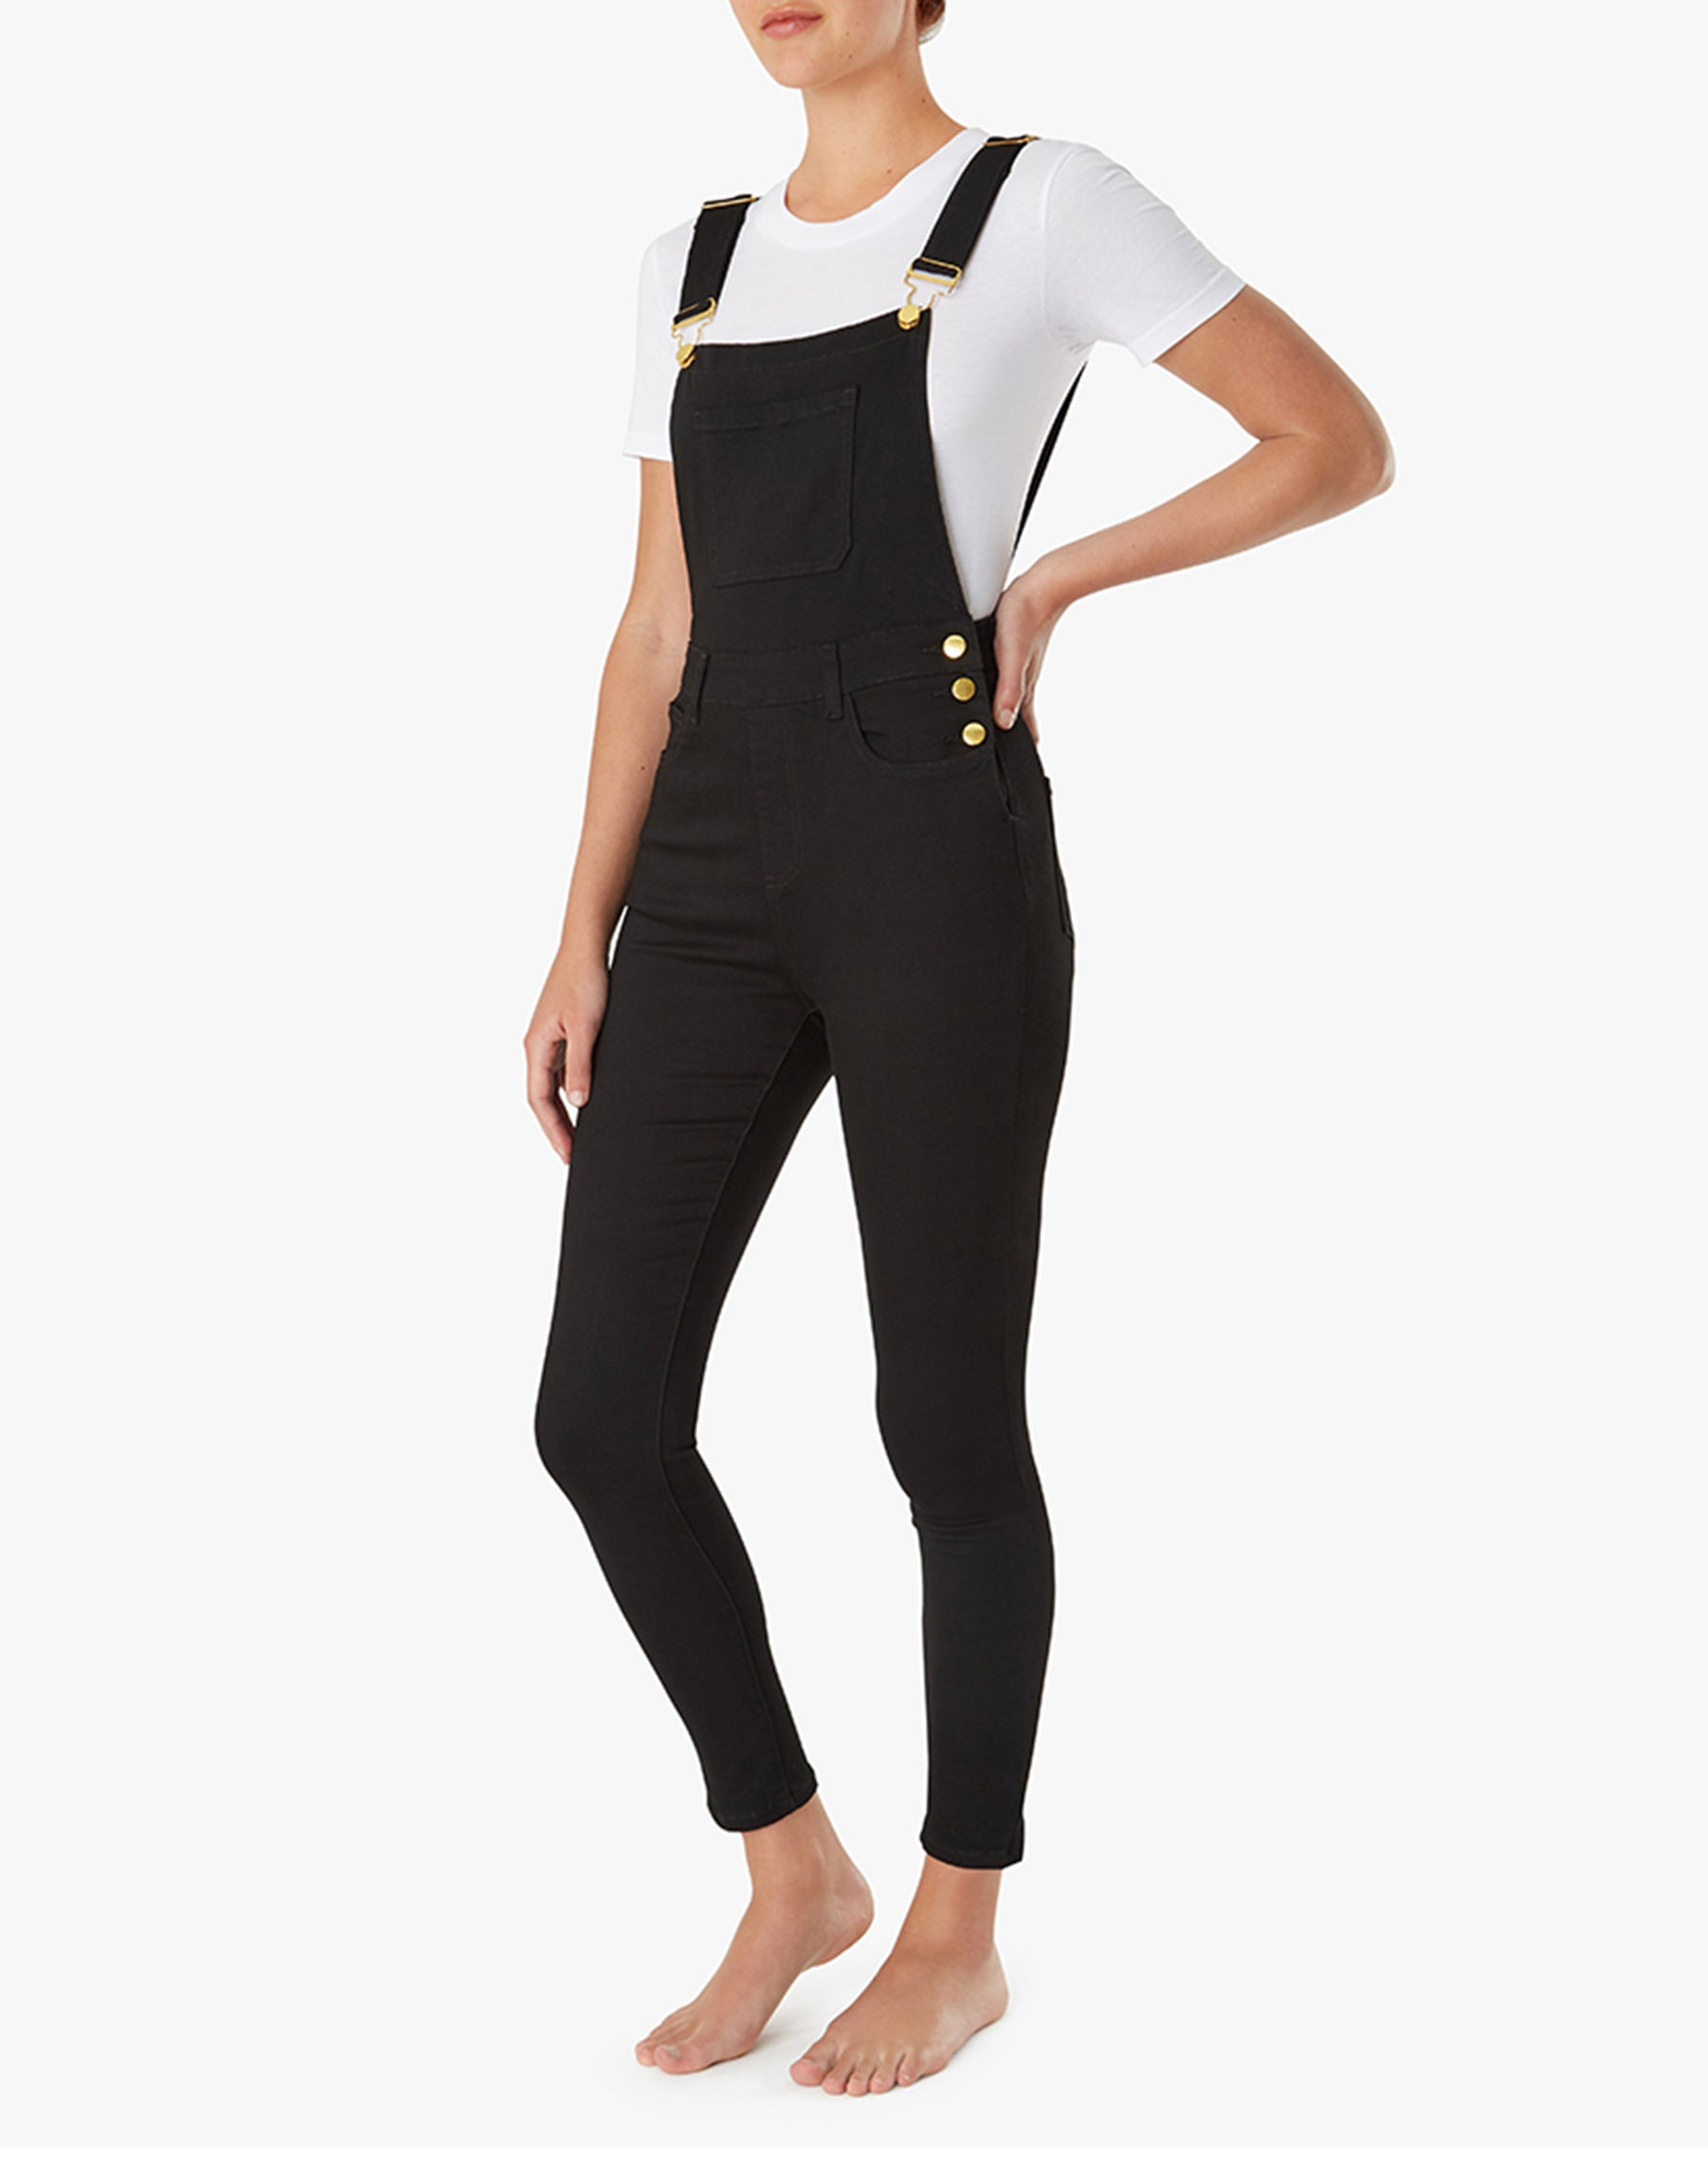 The HIGH RISE SKINNY Overalls in Black | We Wore What